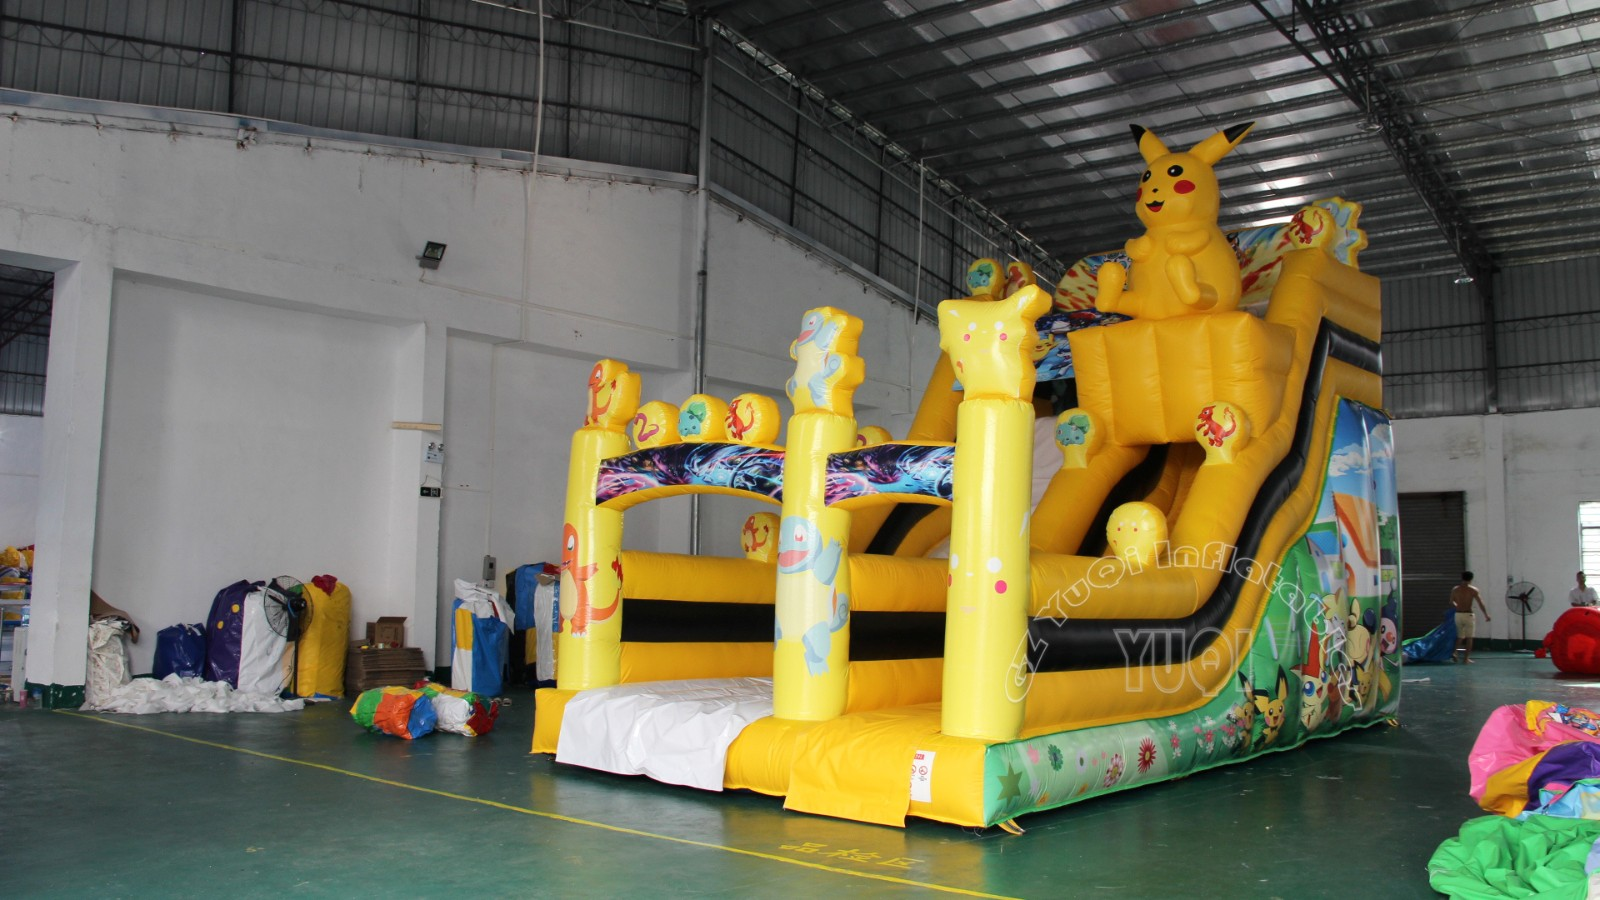 YUQI-Yq20 Best Qaulity Inflatable Pool Slide Pikachu Children Slide Play